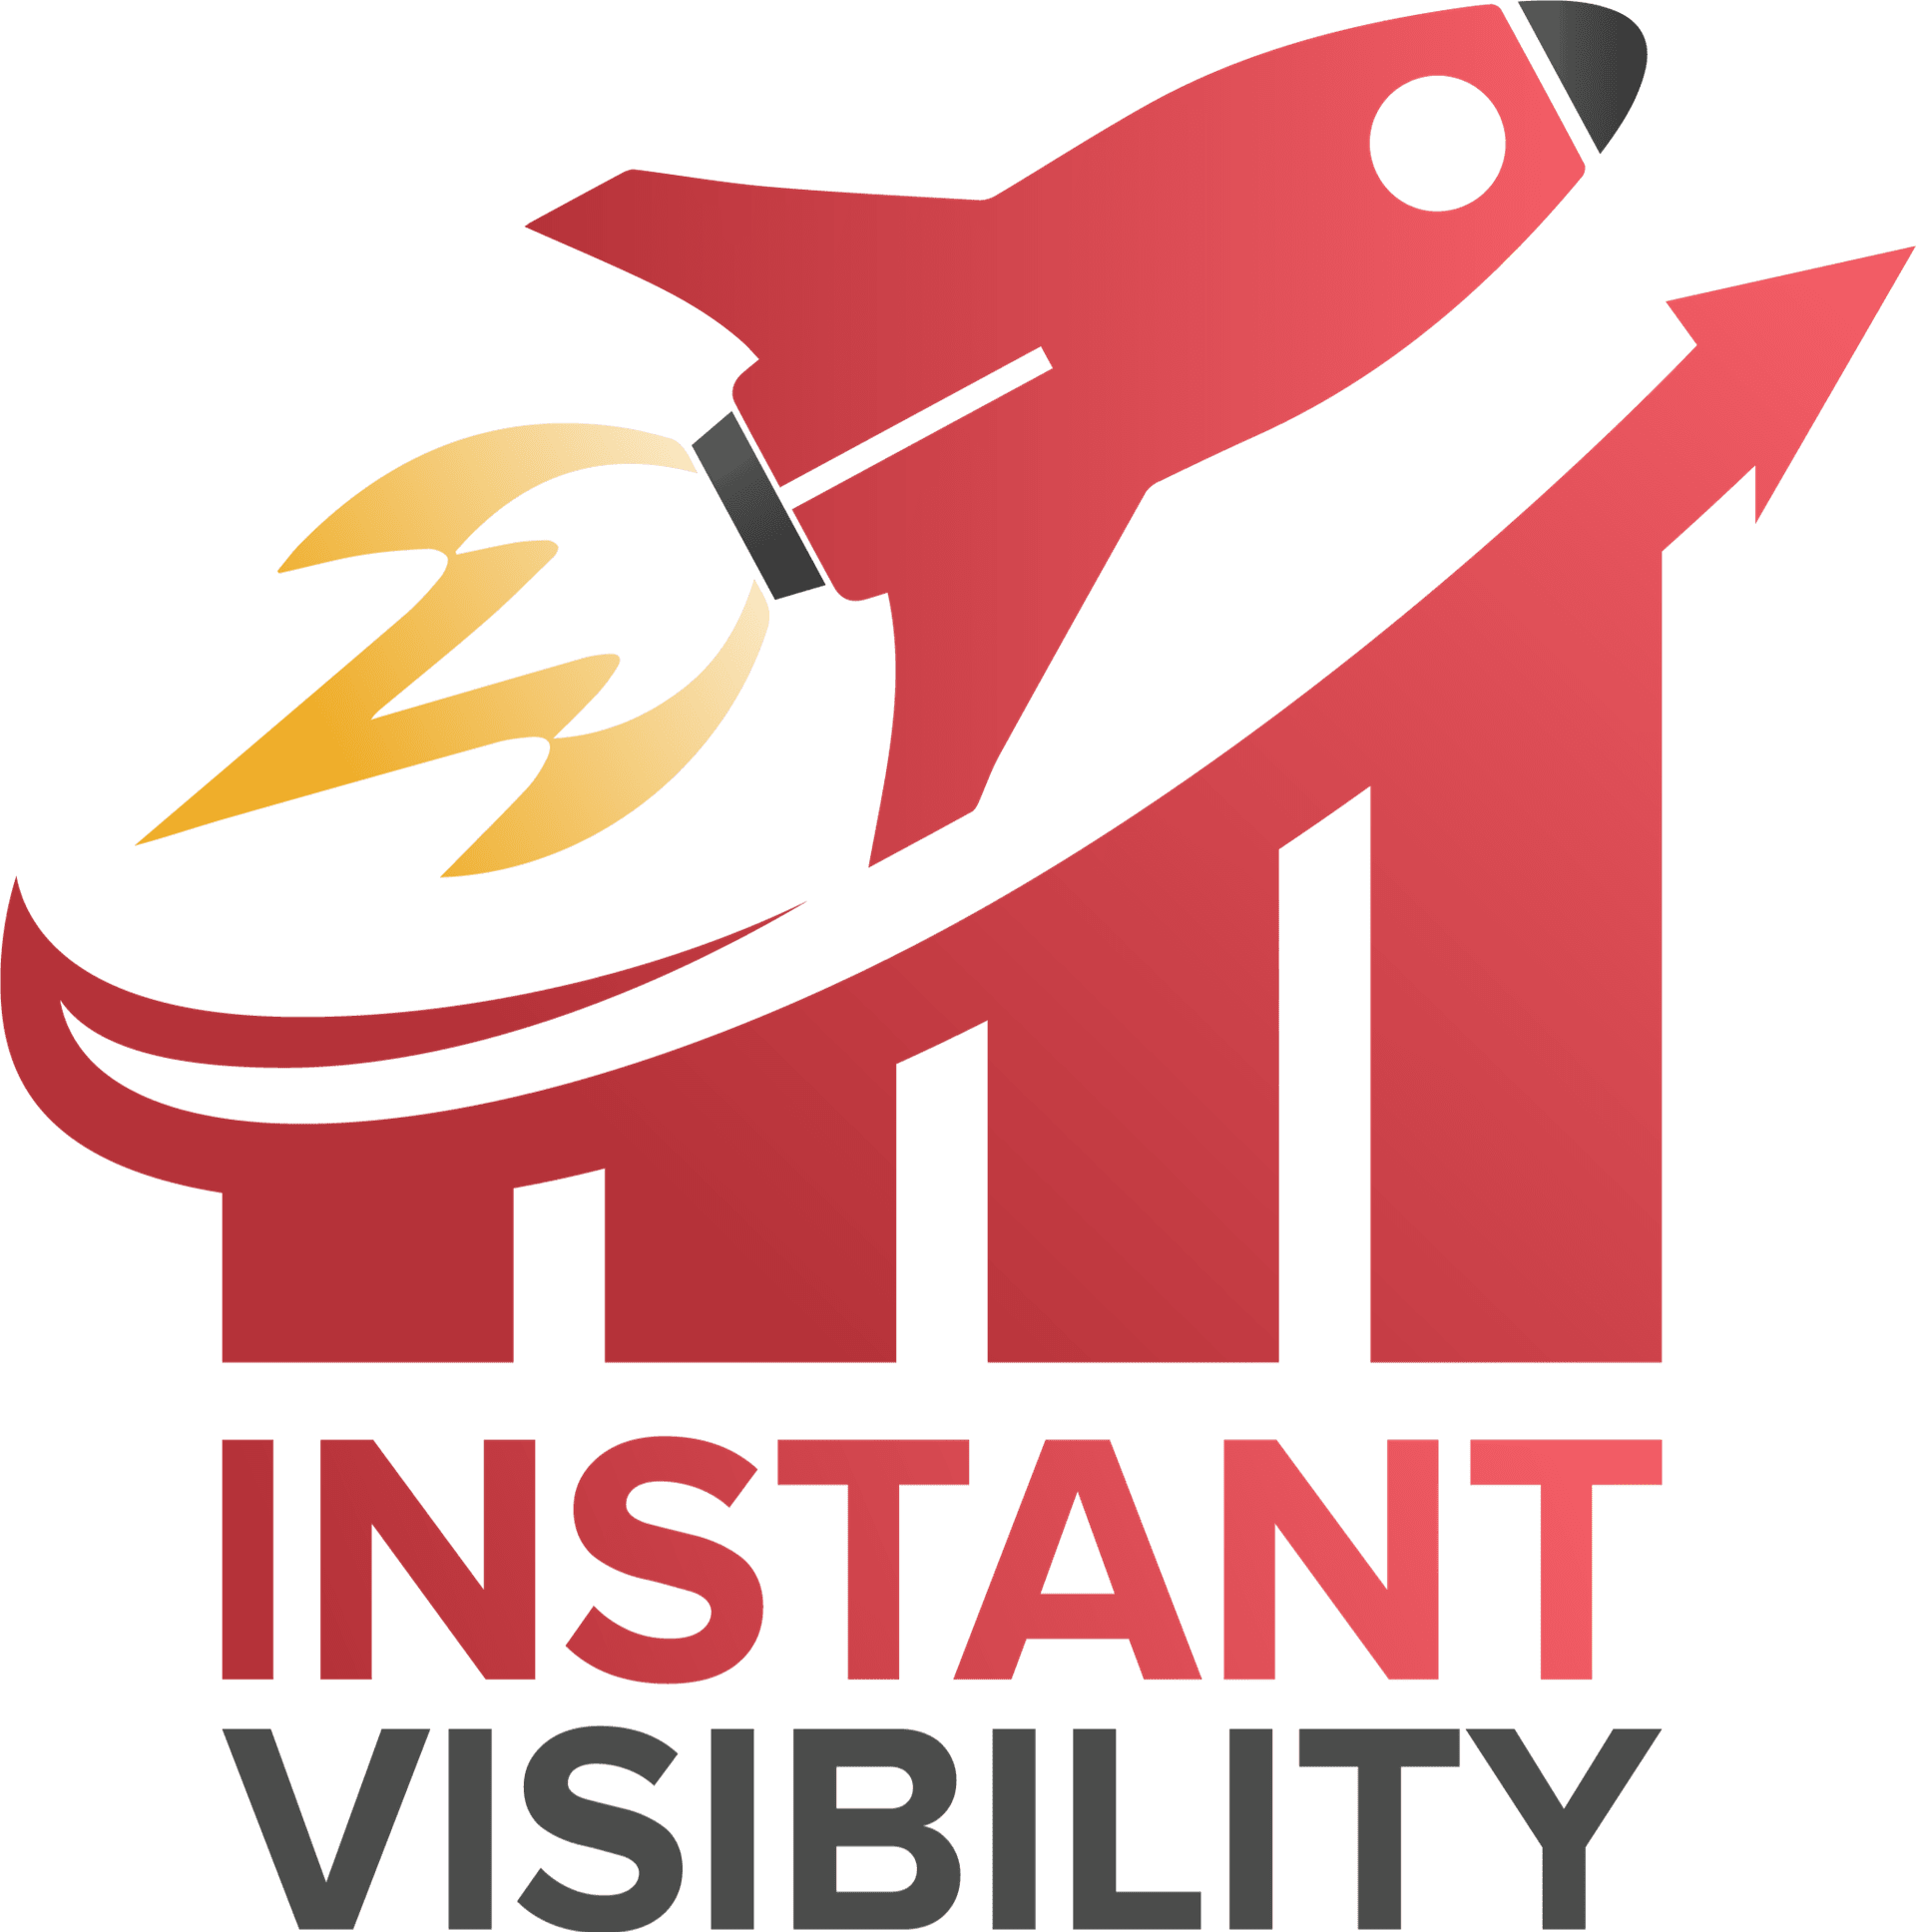 Instant Visibility Assets